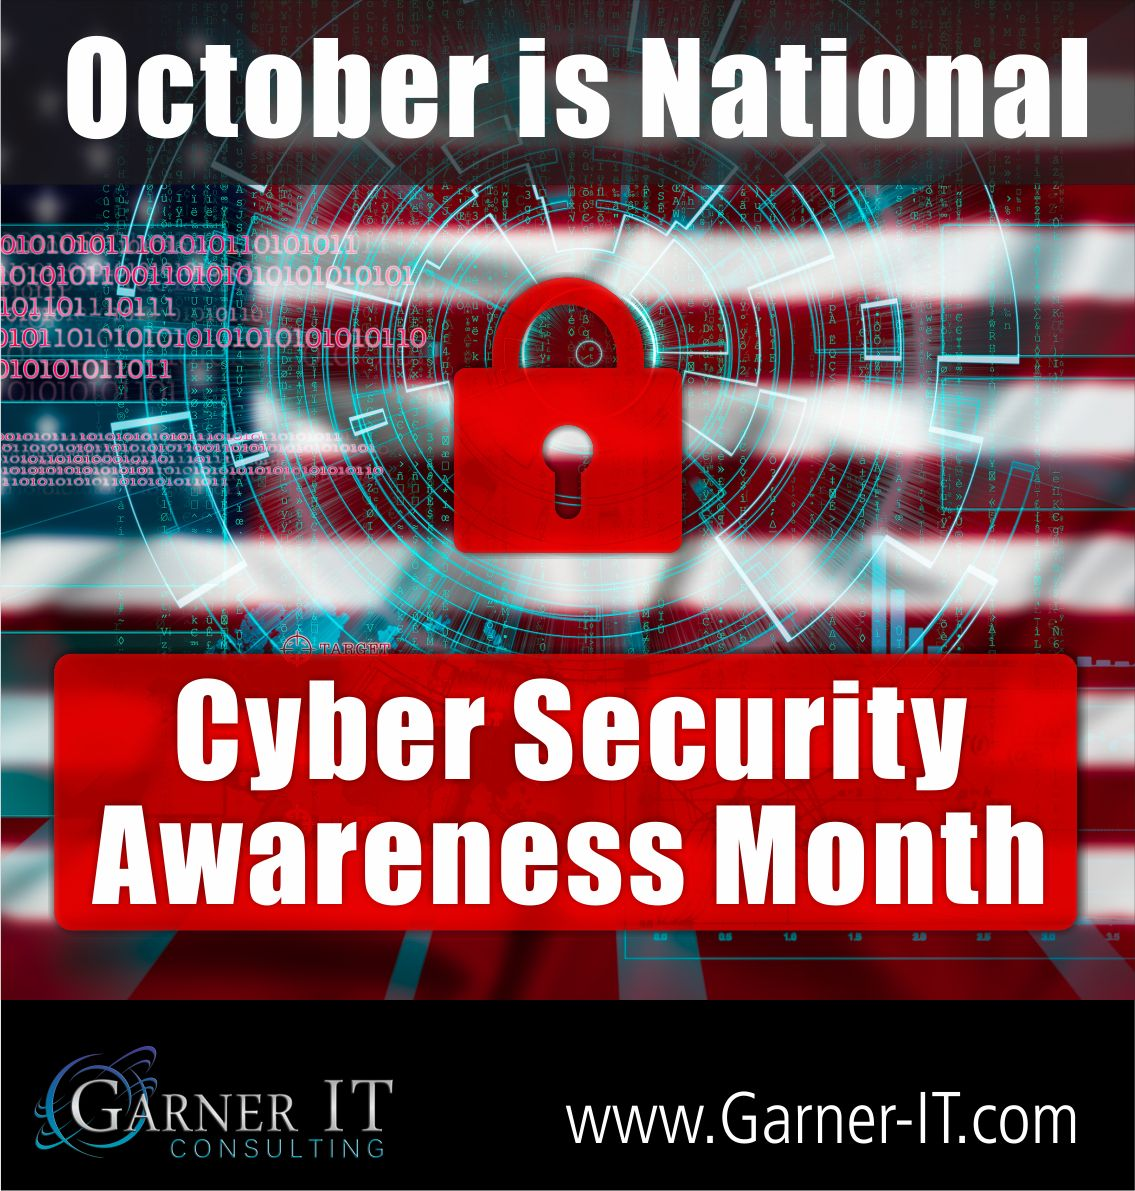 With October being National Cyber Security Awareness, we